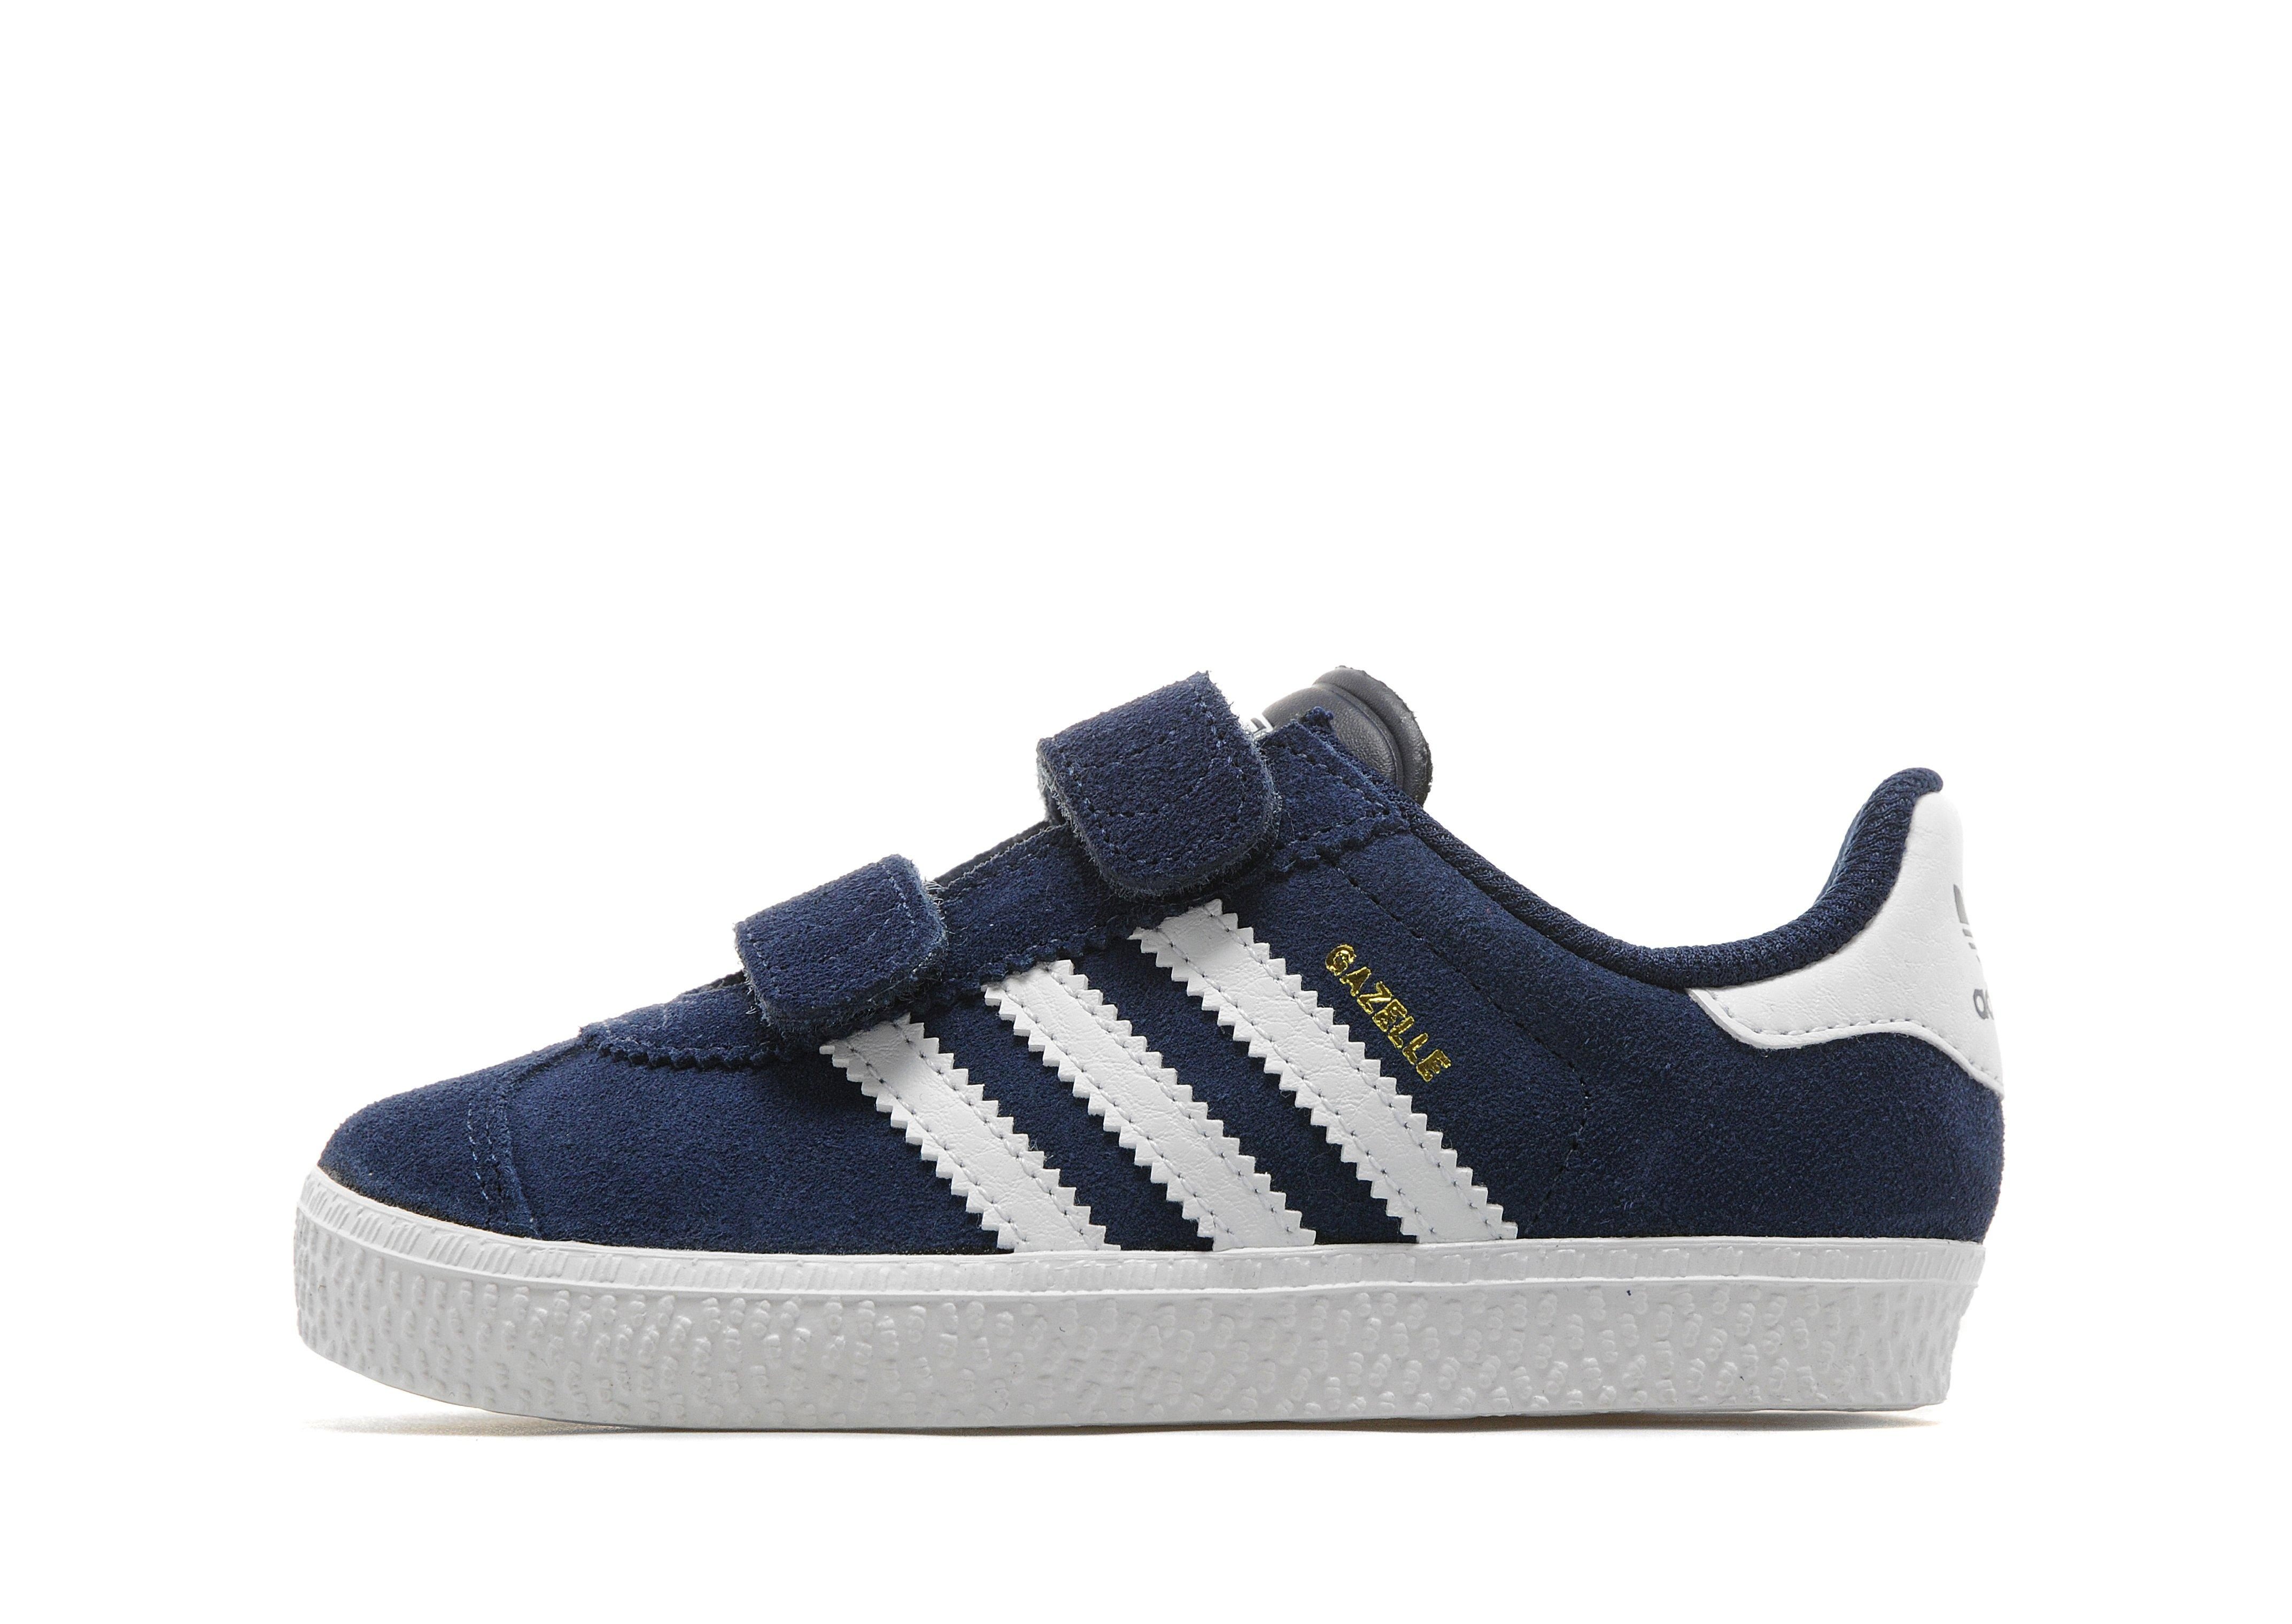 Adidas Originals Gazelle Ii Mens Trainers - Green/White